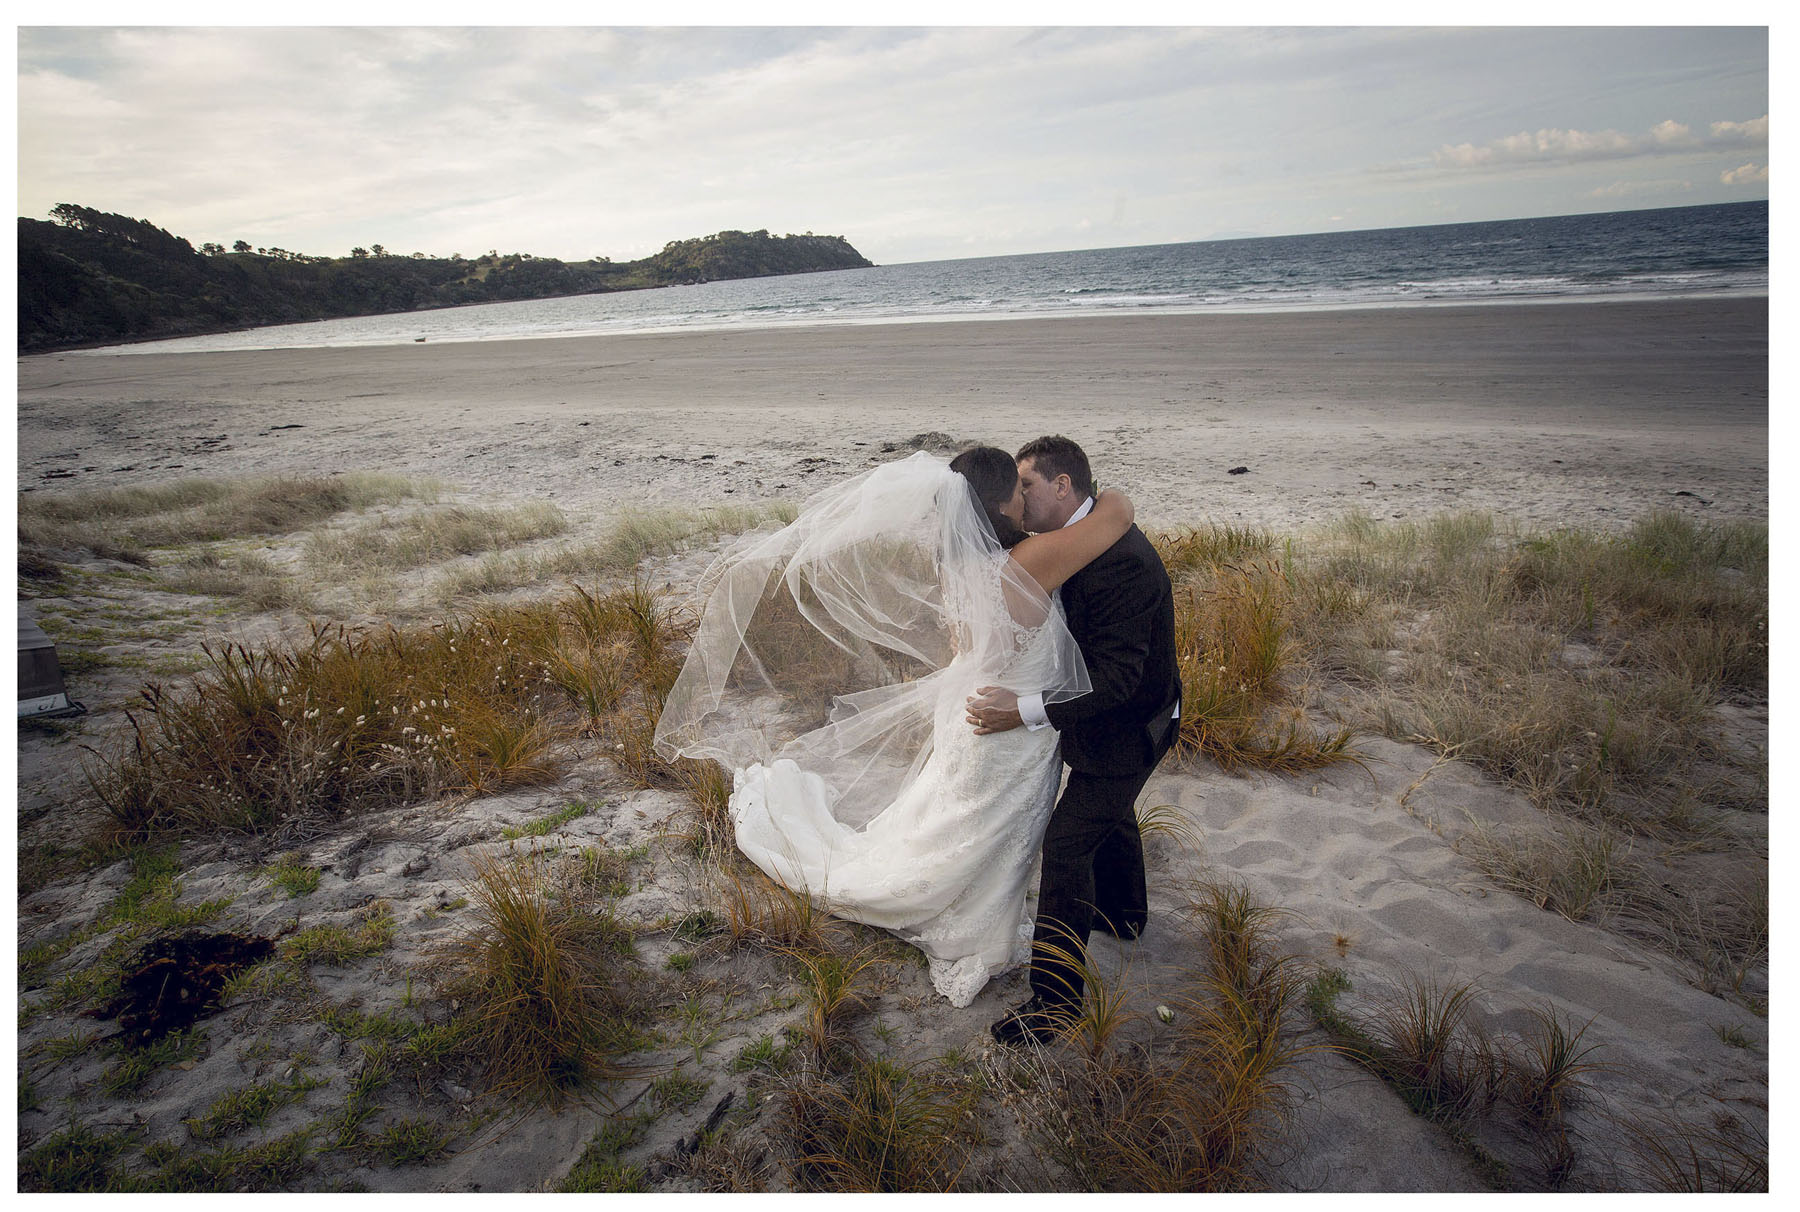 Waiheke Island wedding photos by Chris Loufte